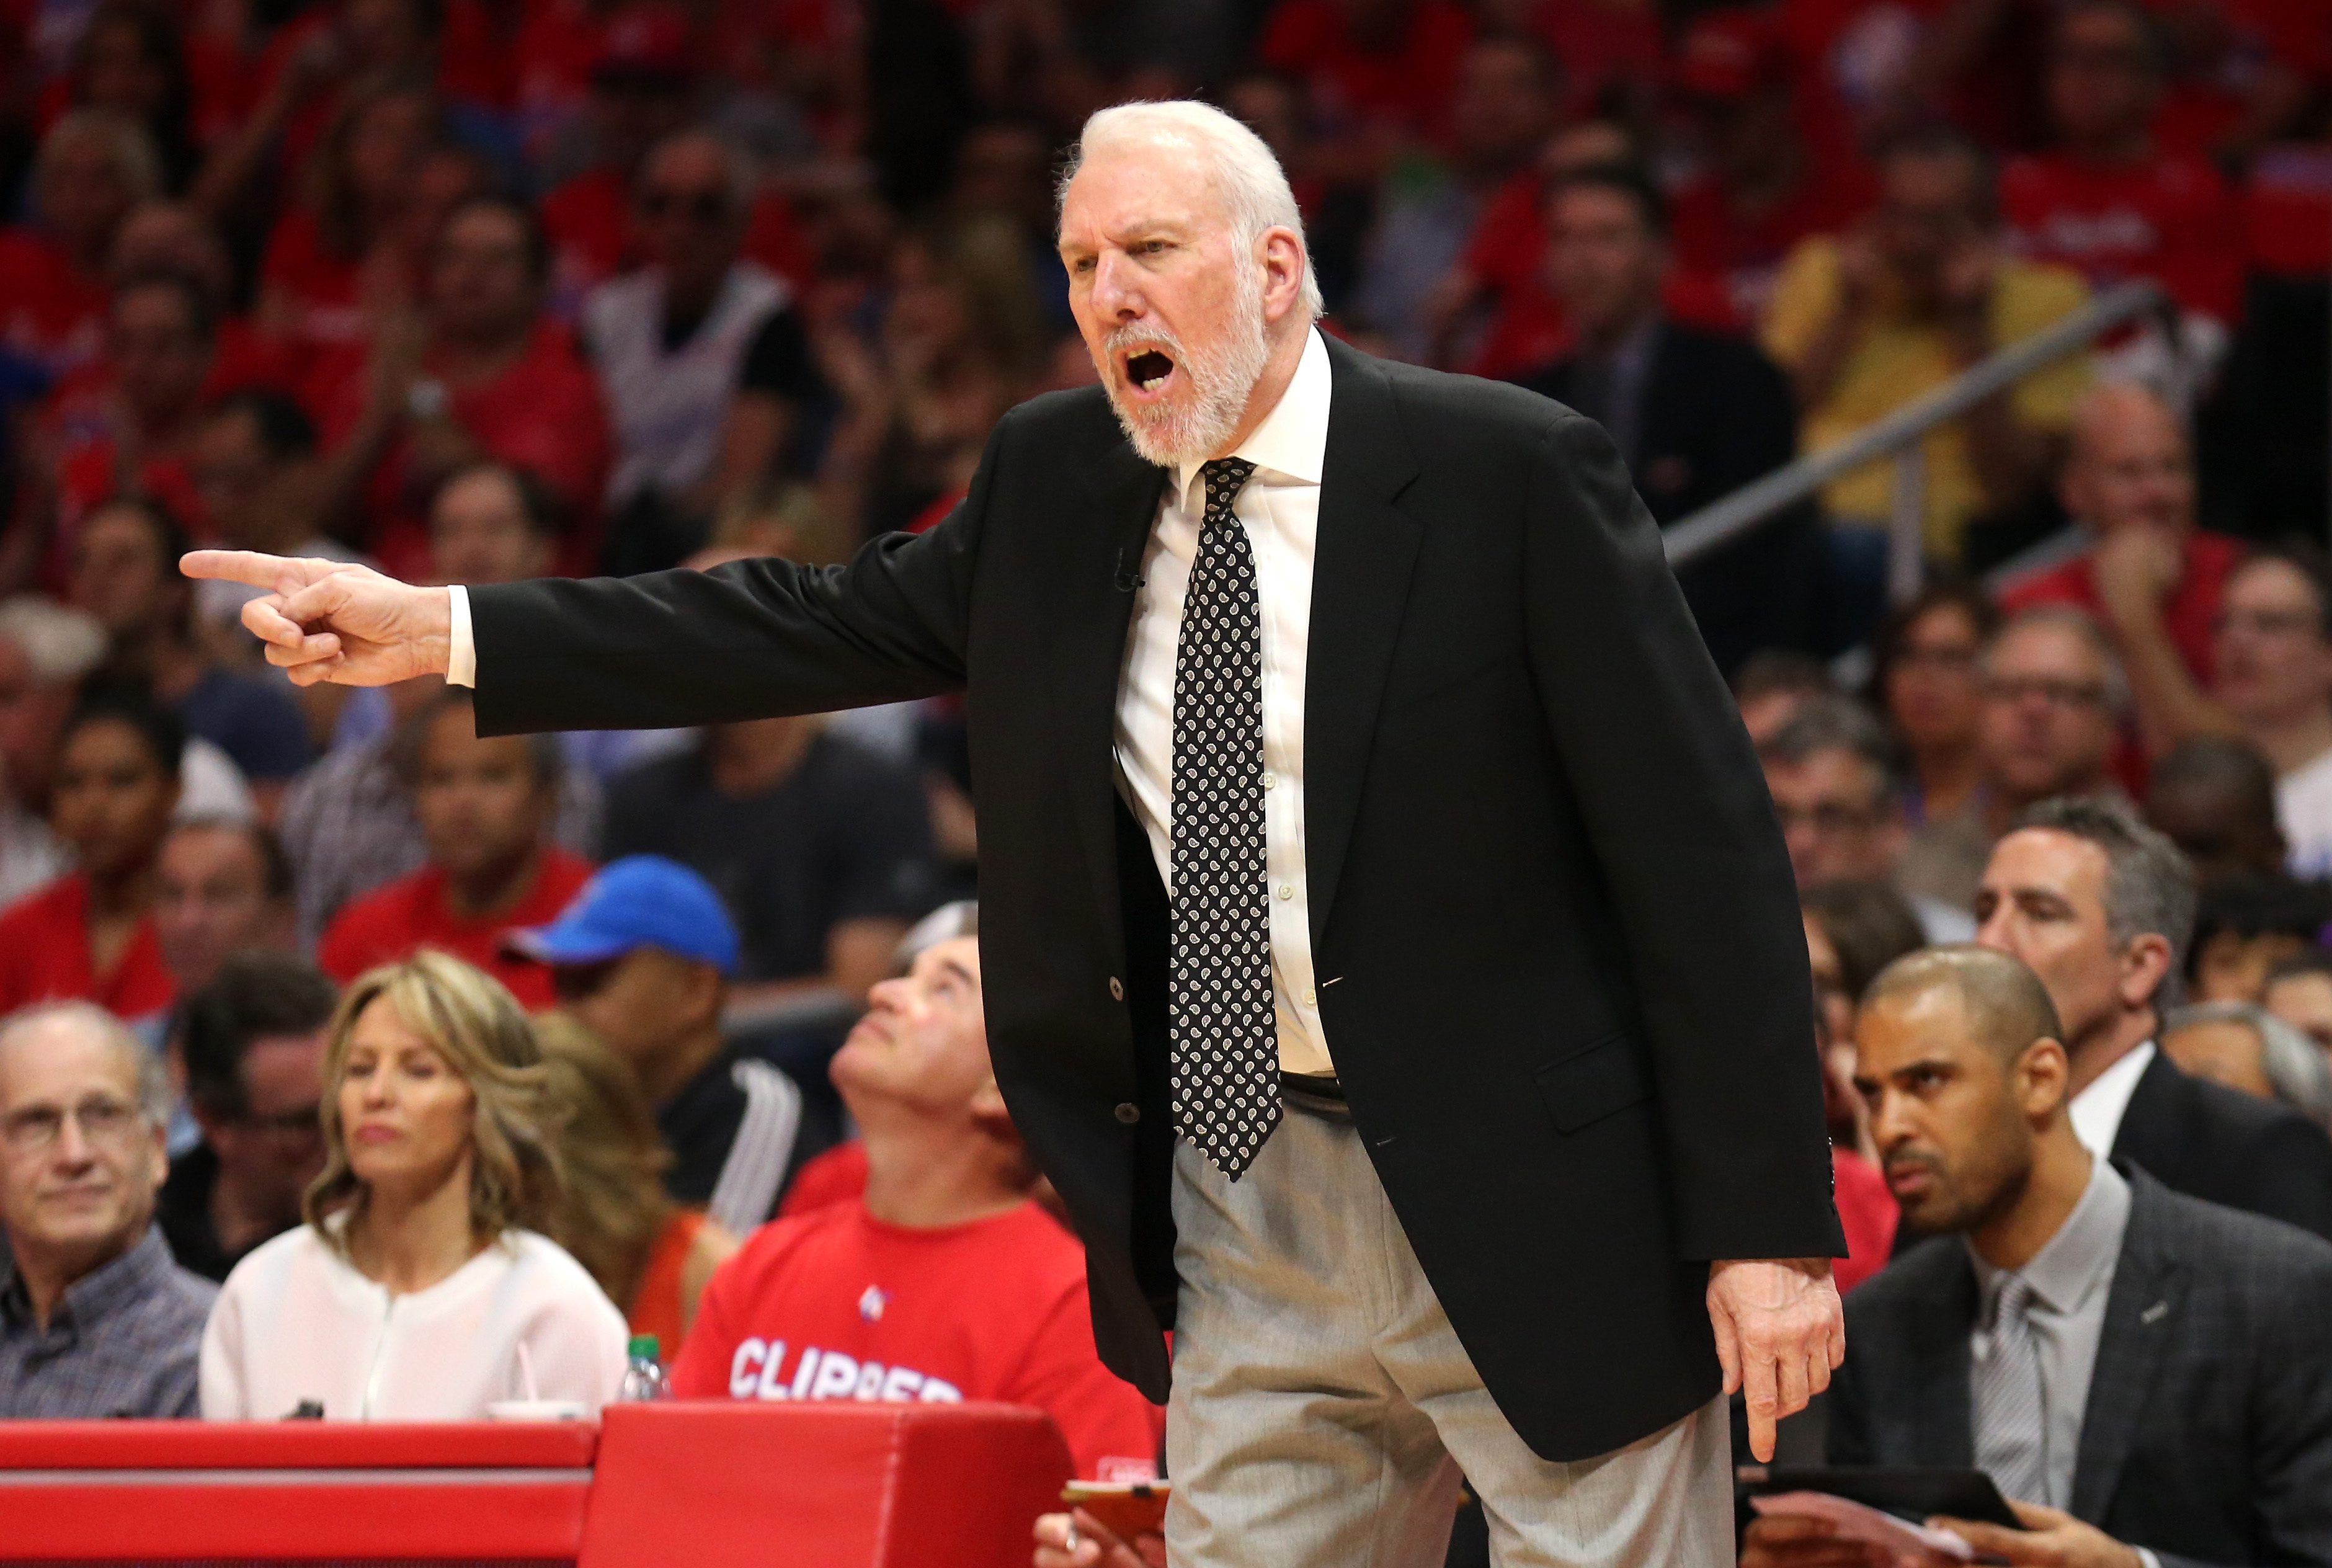 Gregg Popovich will become the coach of USA Basketball after the 2016 Olympics. (Getty)